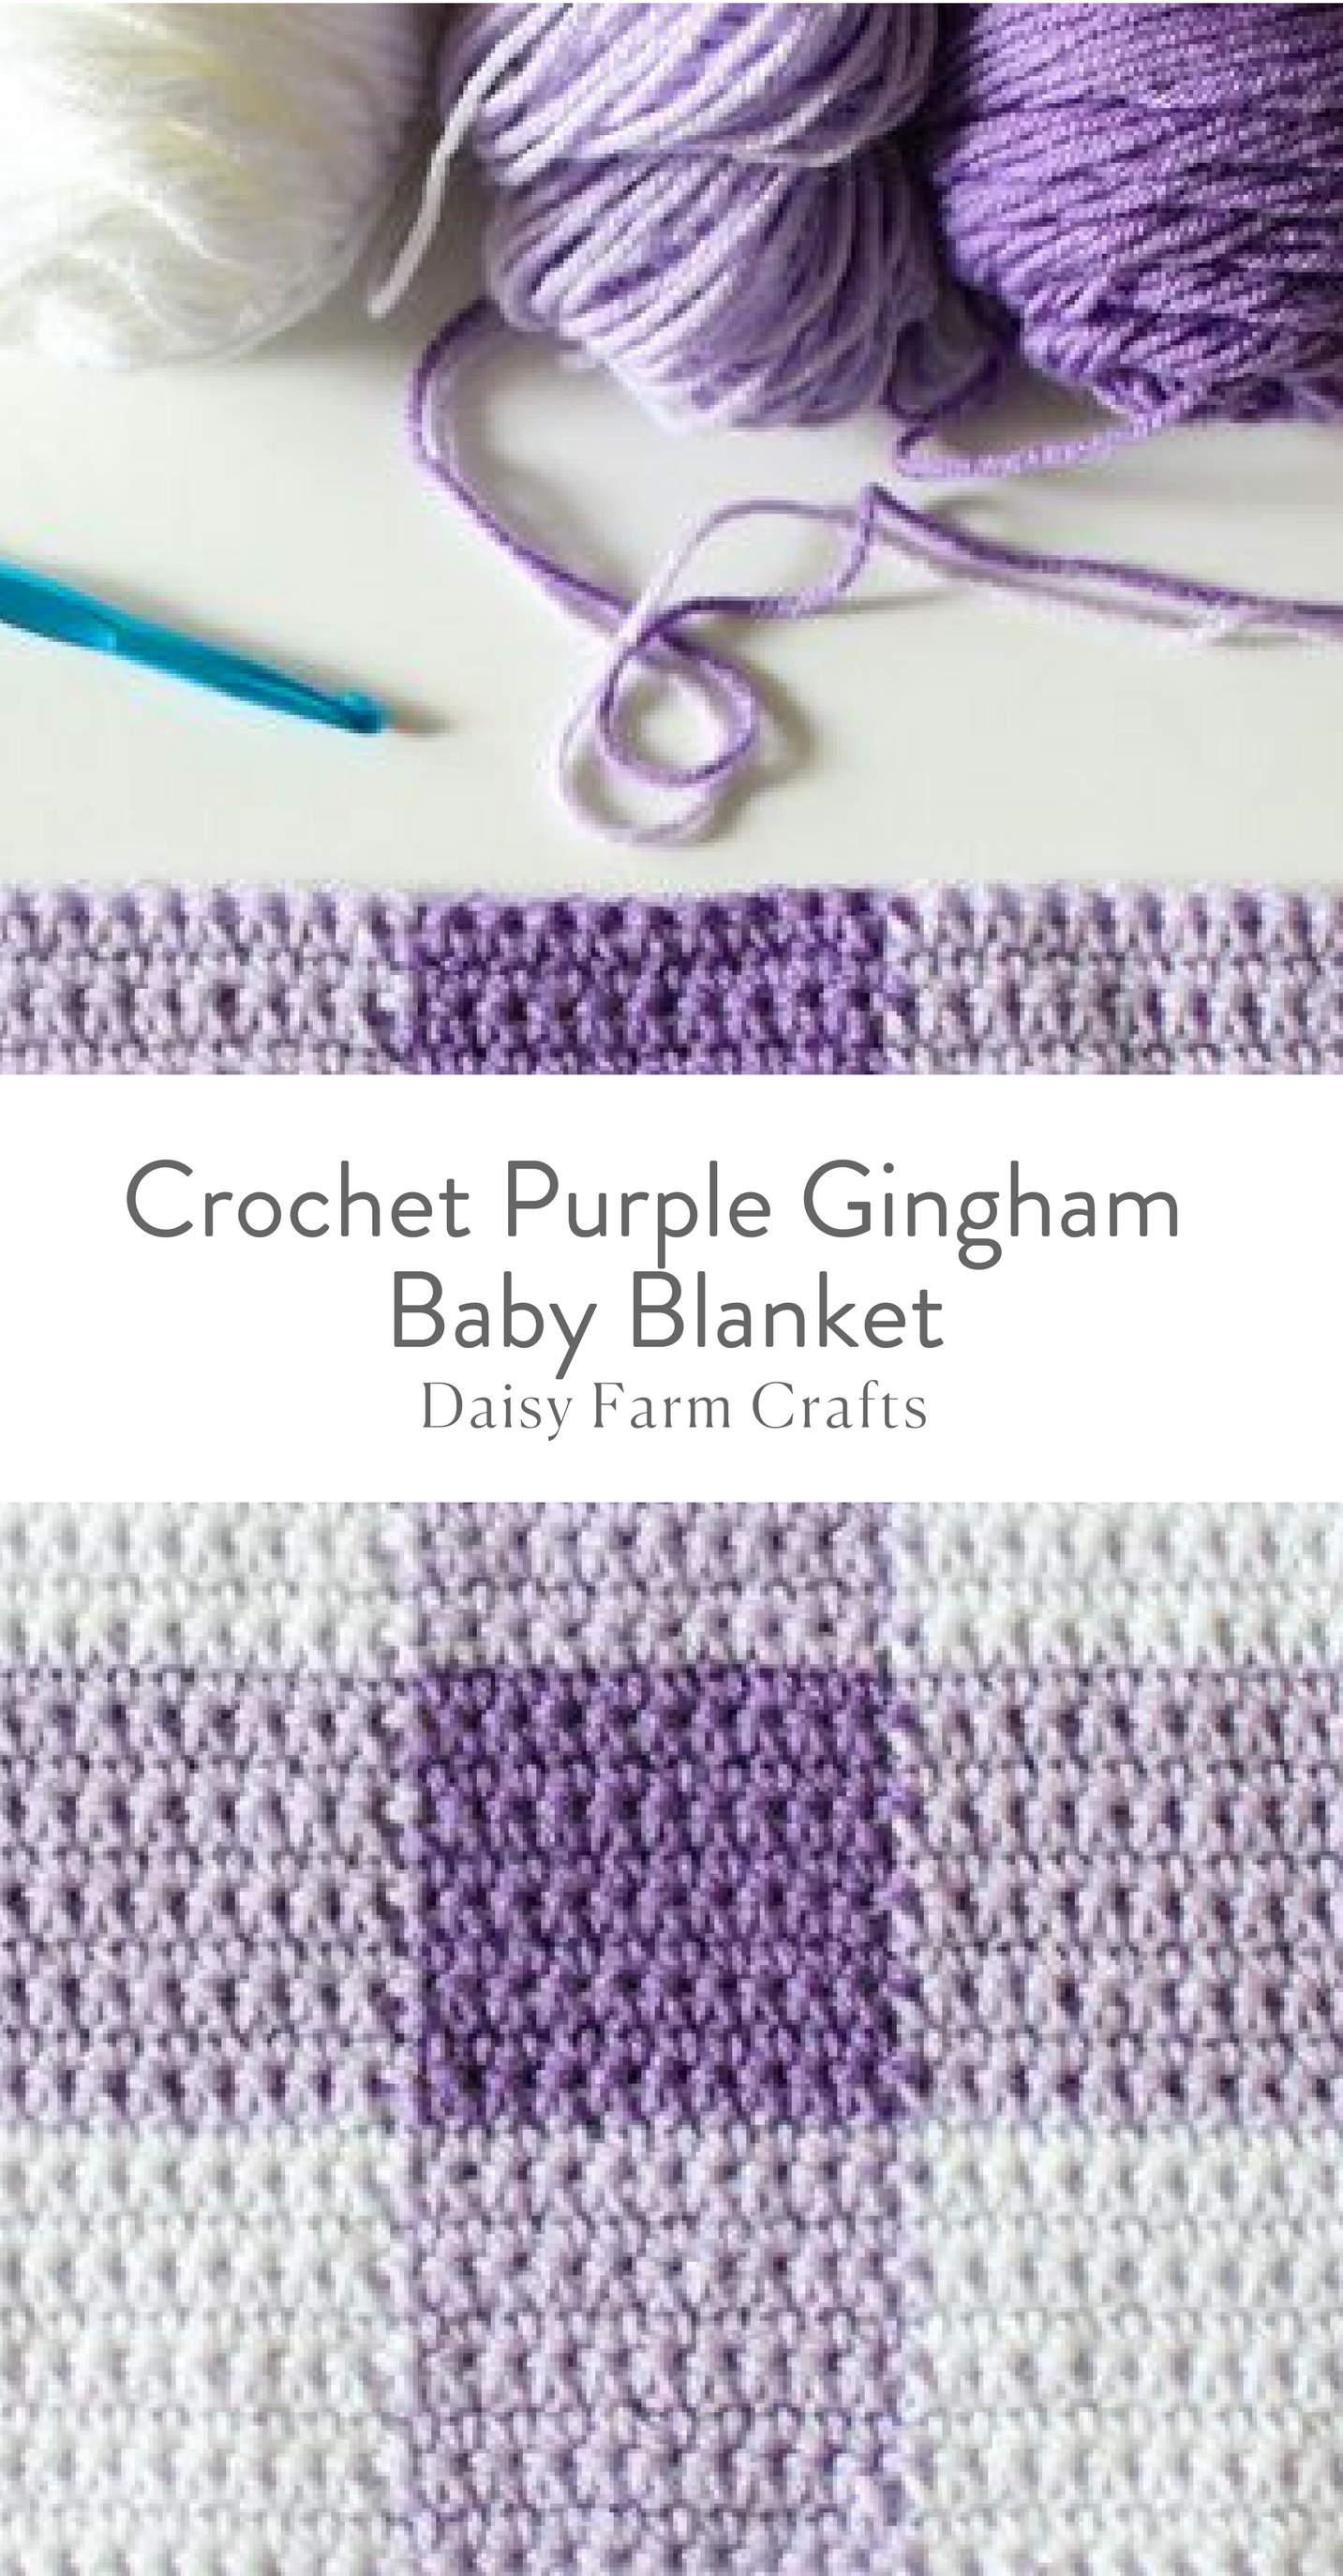 Crochet Purple Gingham Baby Blanket - Free Pattern | Hooked ...